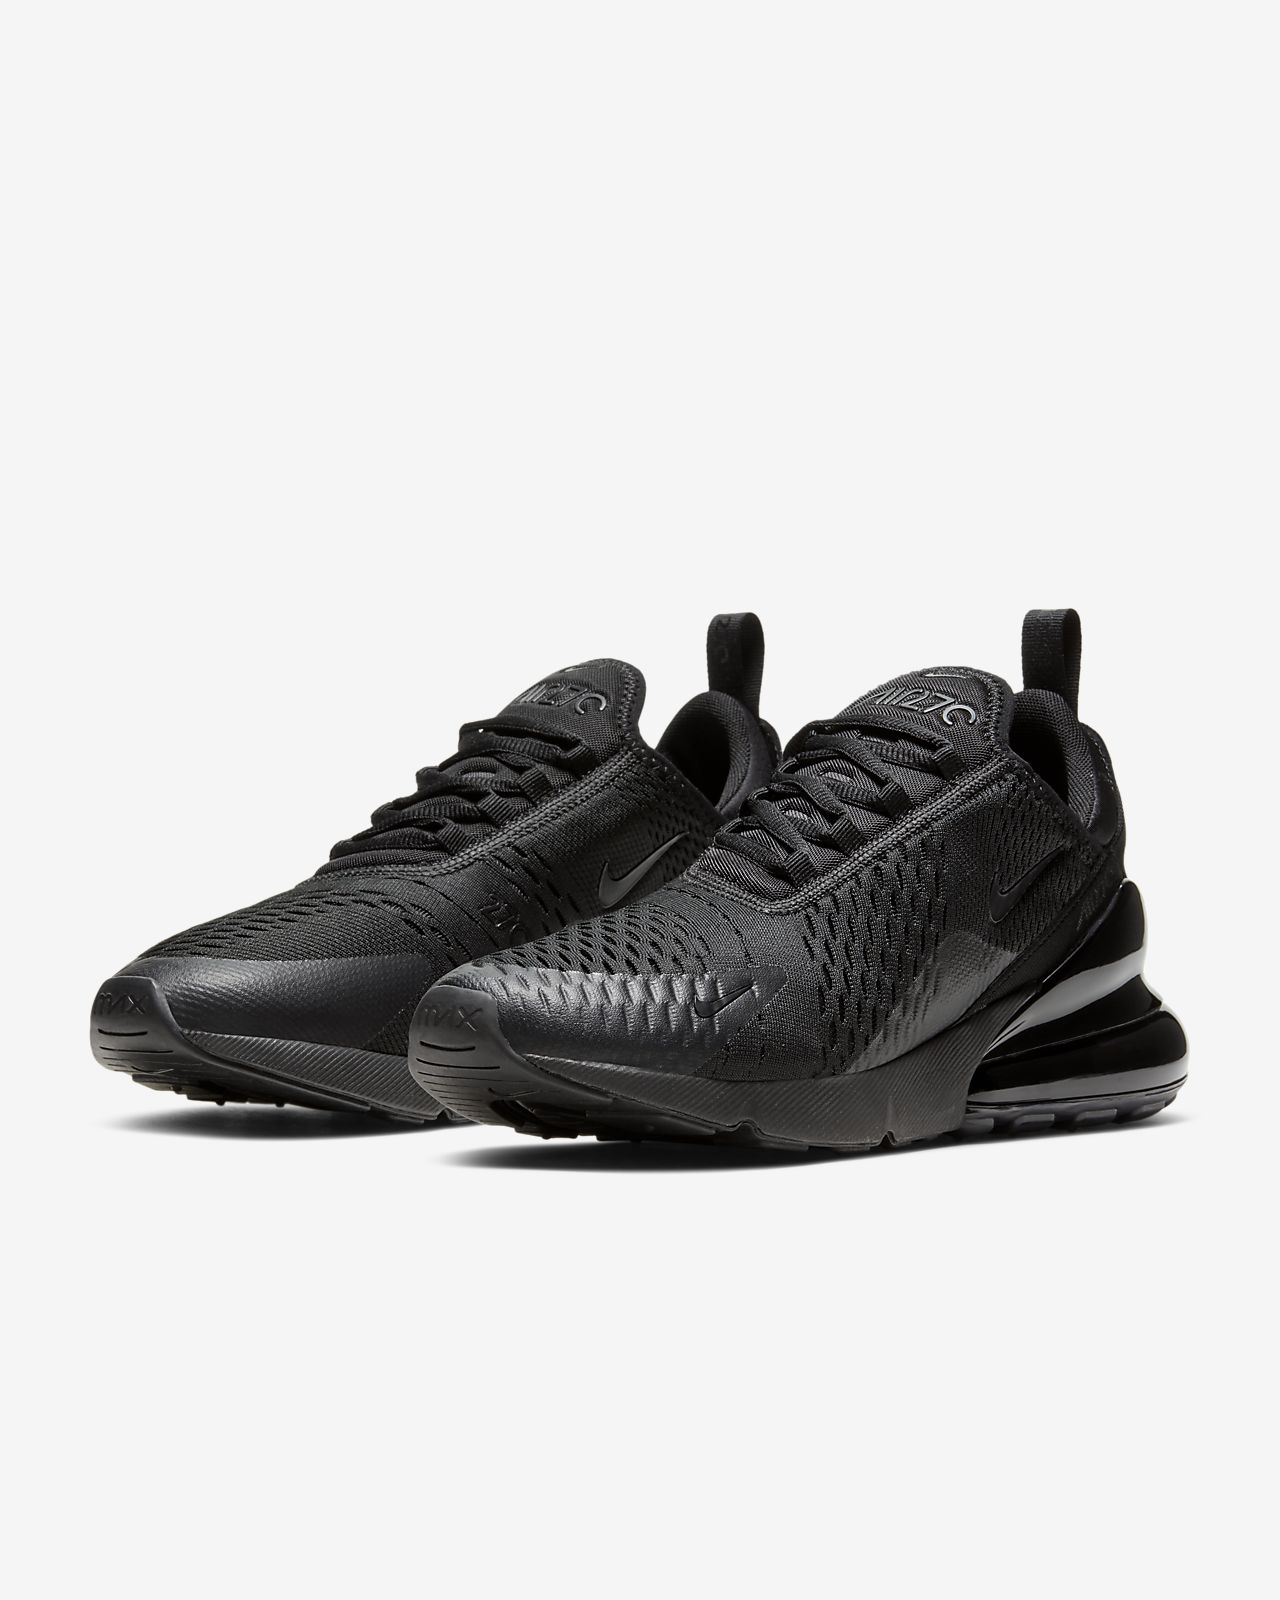 7fbc10c6681ea7 Nike Air Max 270 Men s Shoe. Nike.com AU